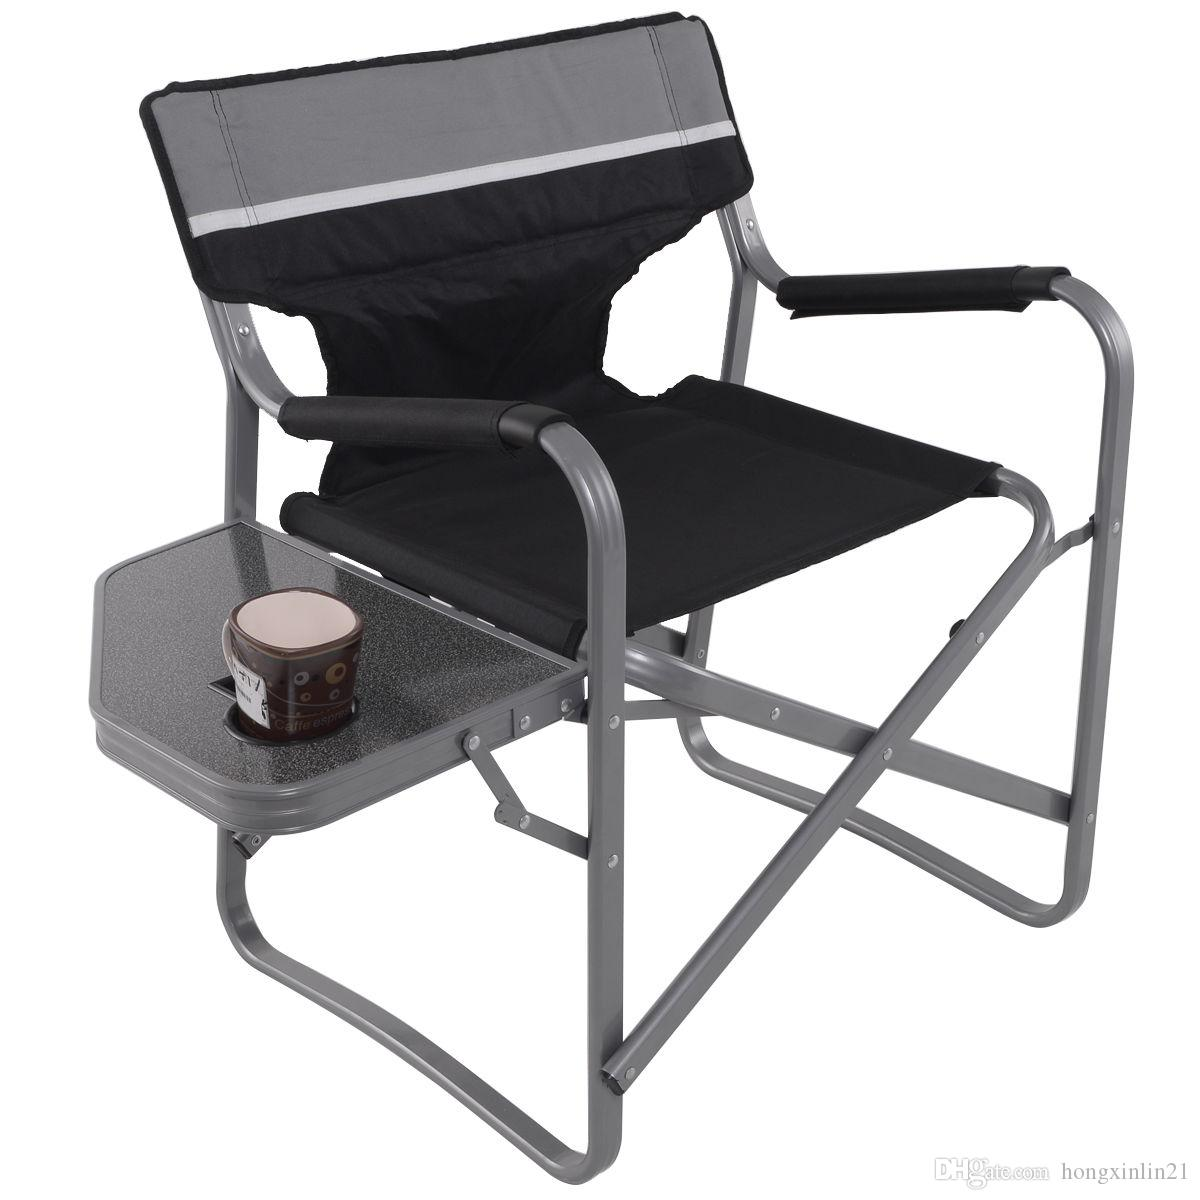 2018 Directoru0027S Chair Folding Side Table Outdoor Camping Fishing Cup Holder  From Hongxinlin21, $28.15 | Dhgate.Com